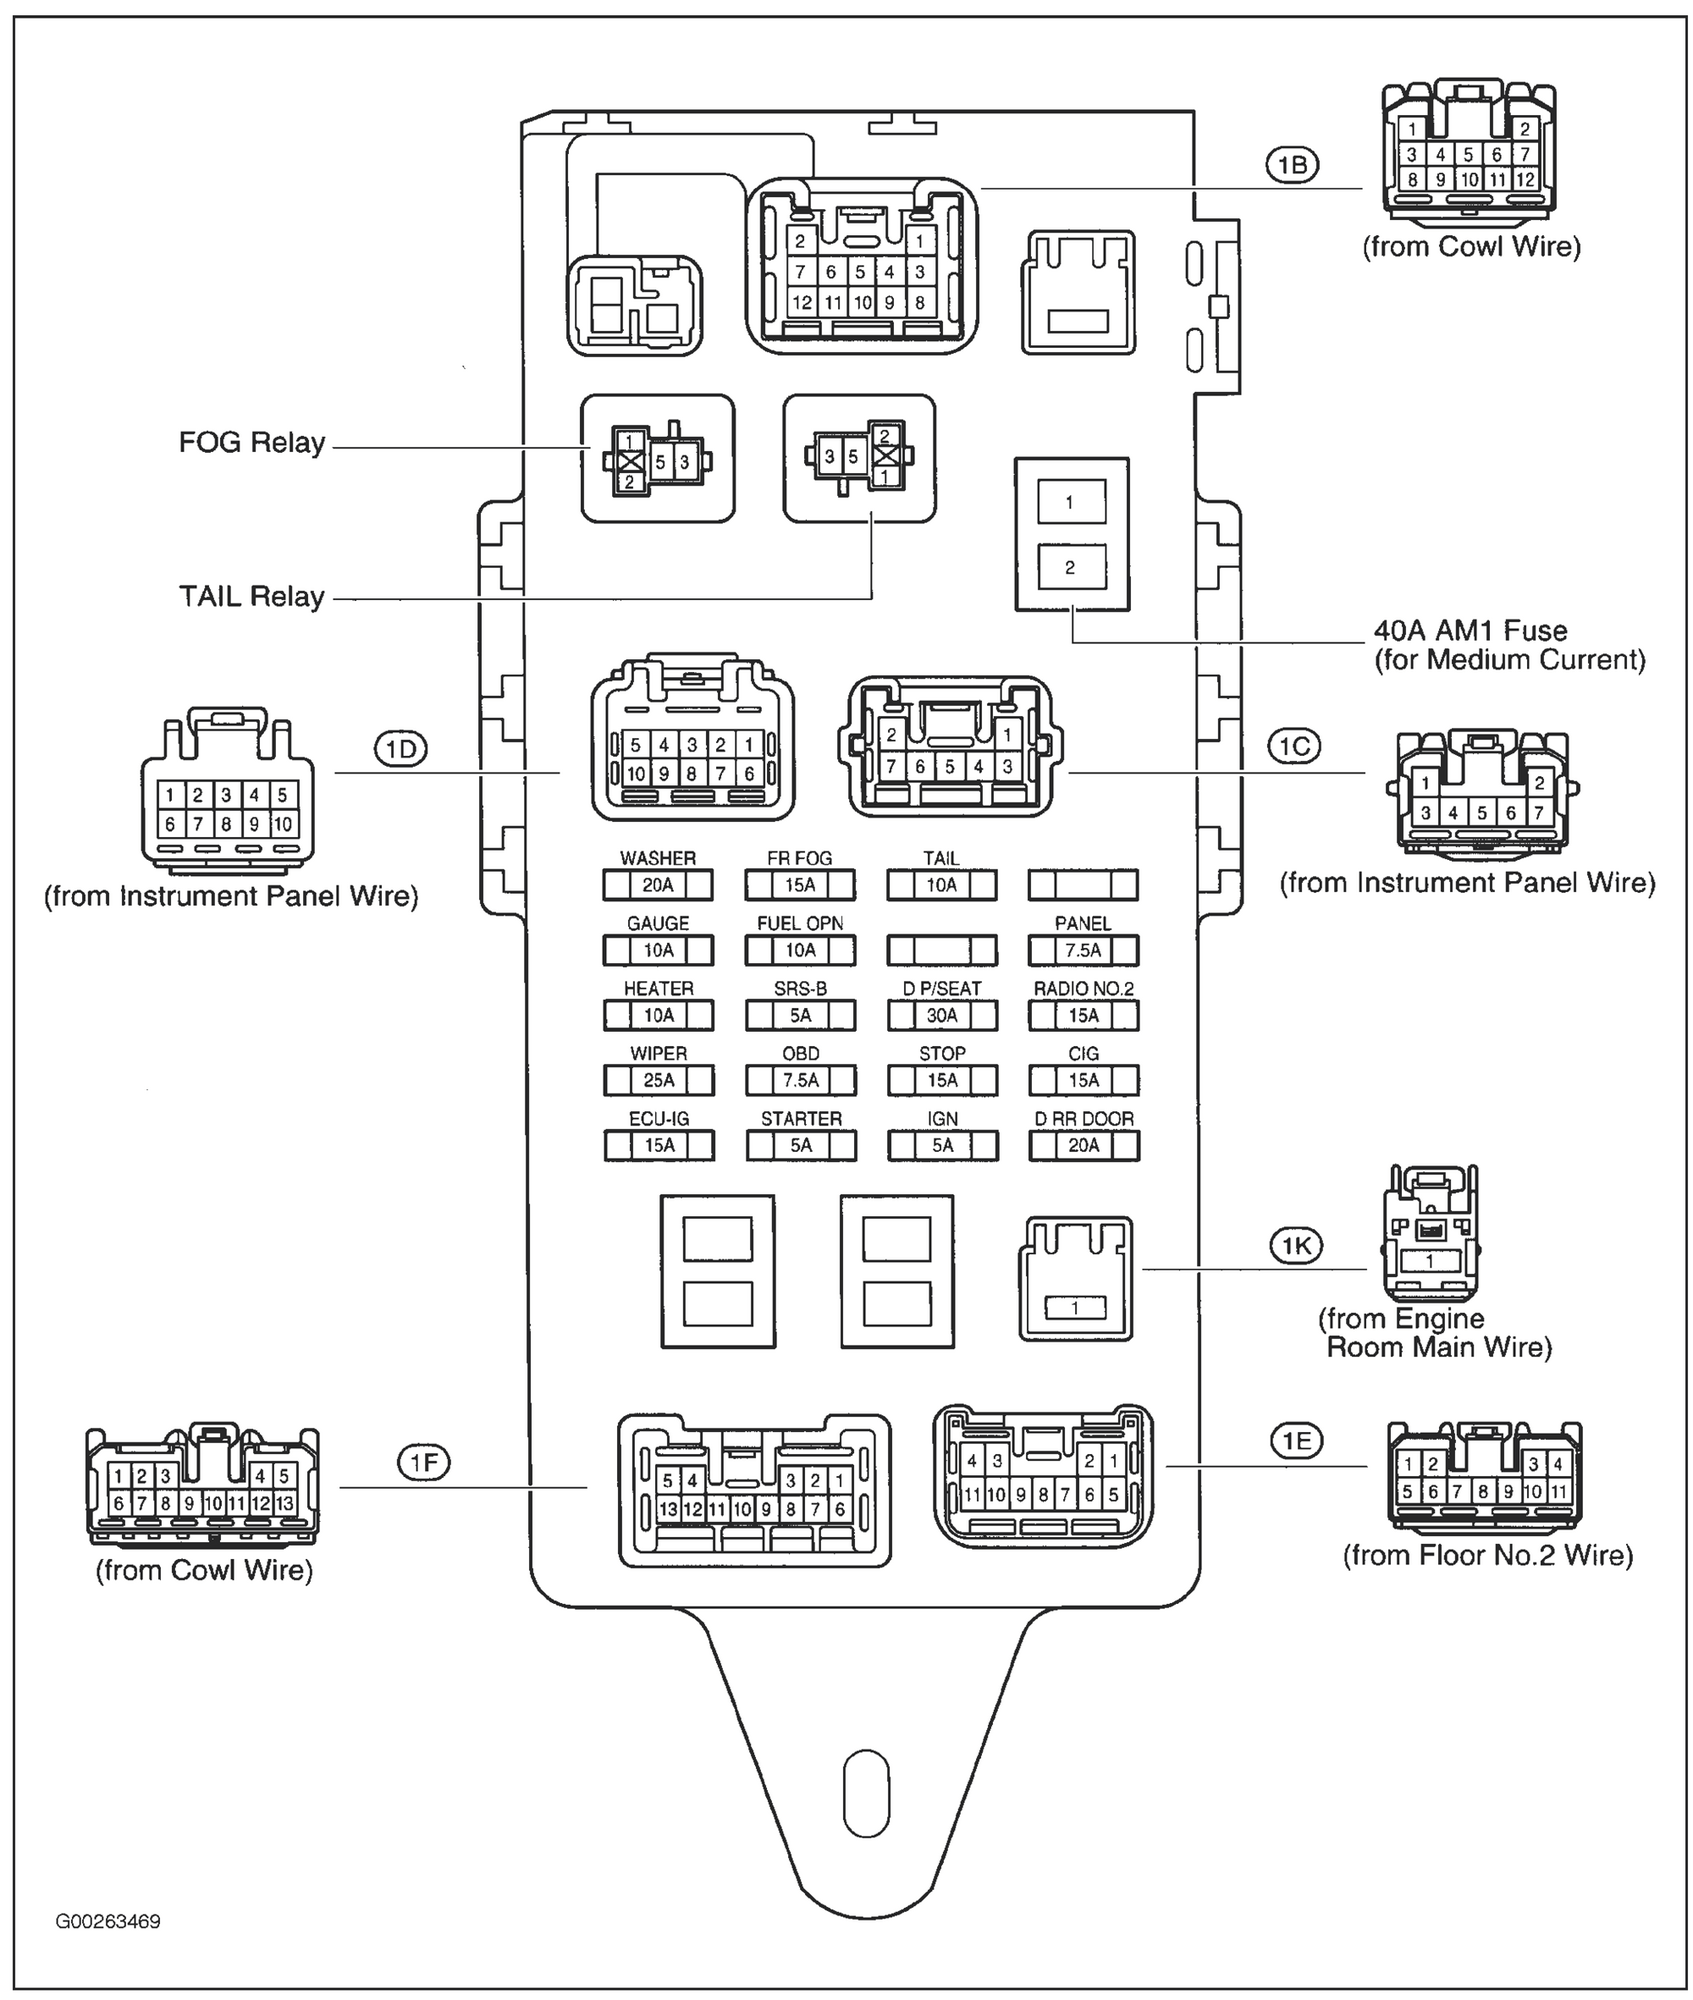 Fuse Diagram For Lexus Gs300